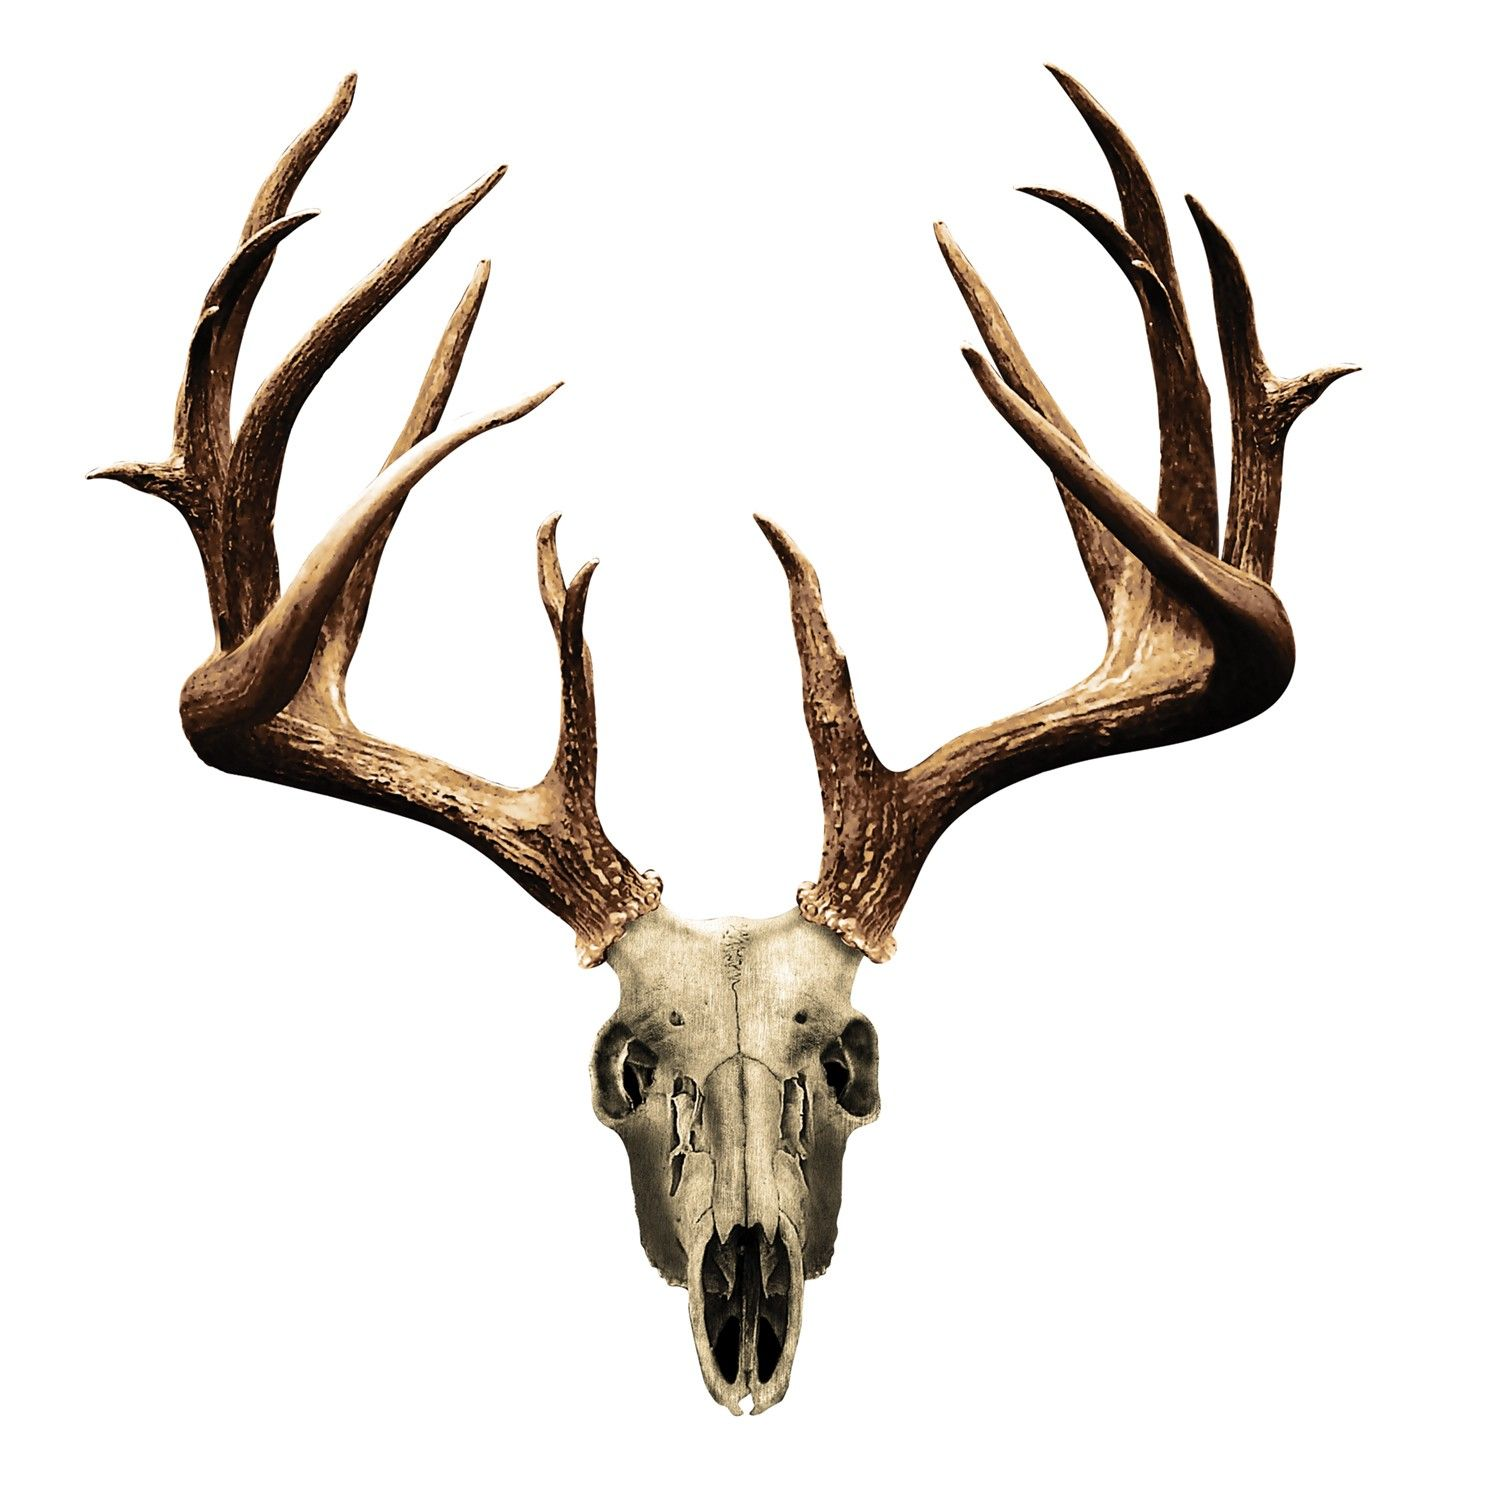 1500x1500 deer skull drawing deer pics deer skull tattoos, deer